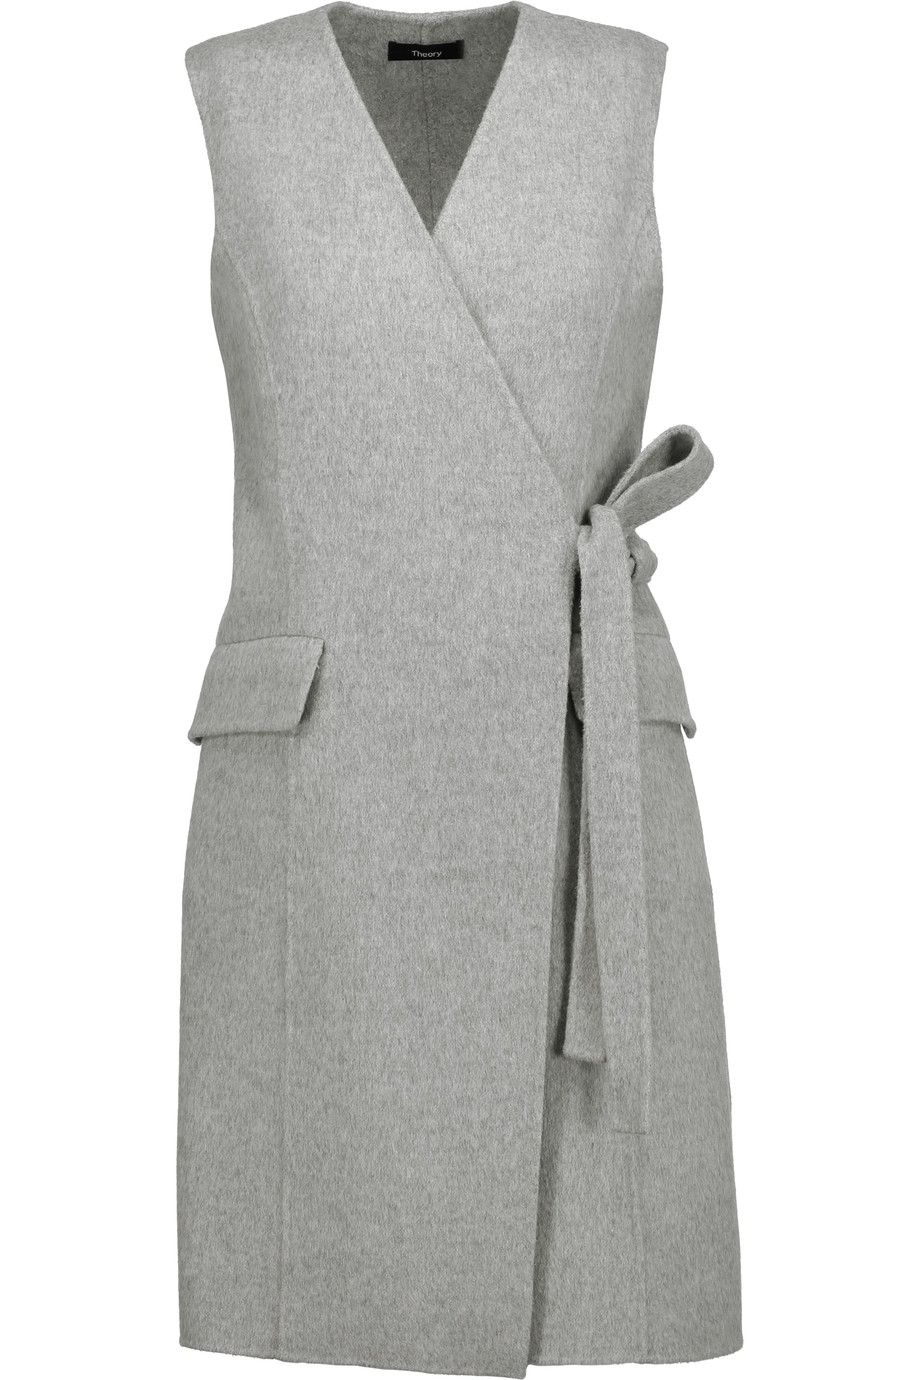 Shop on-sale Theory Livwilth wrap-effect wool and cashmere-blend dress.